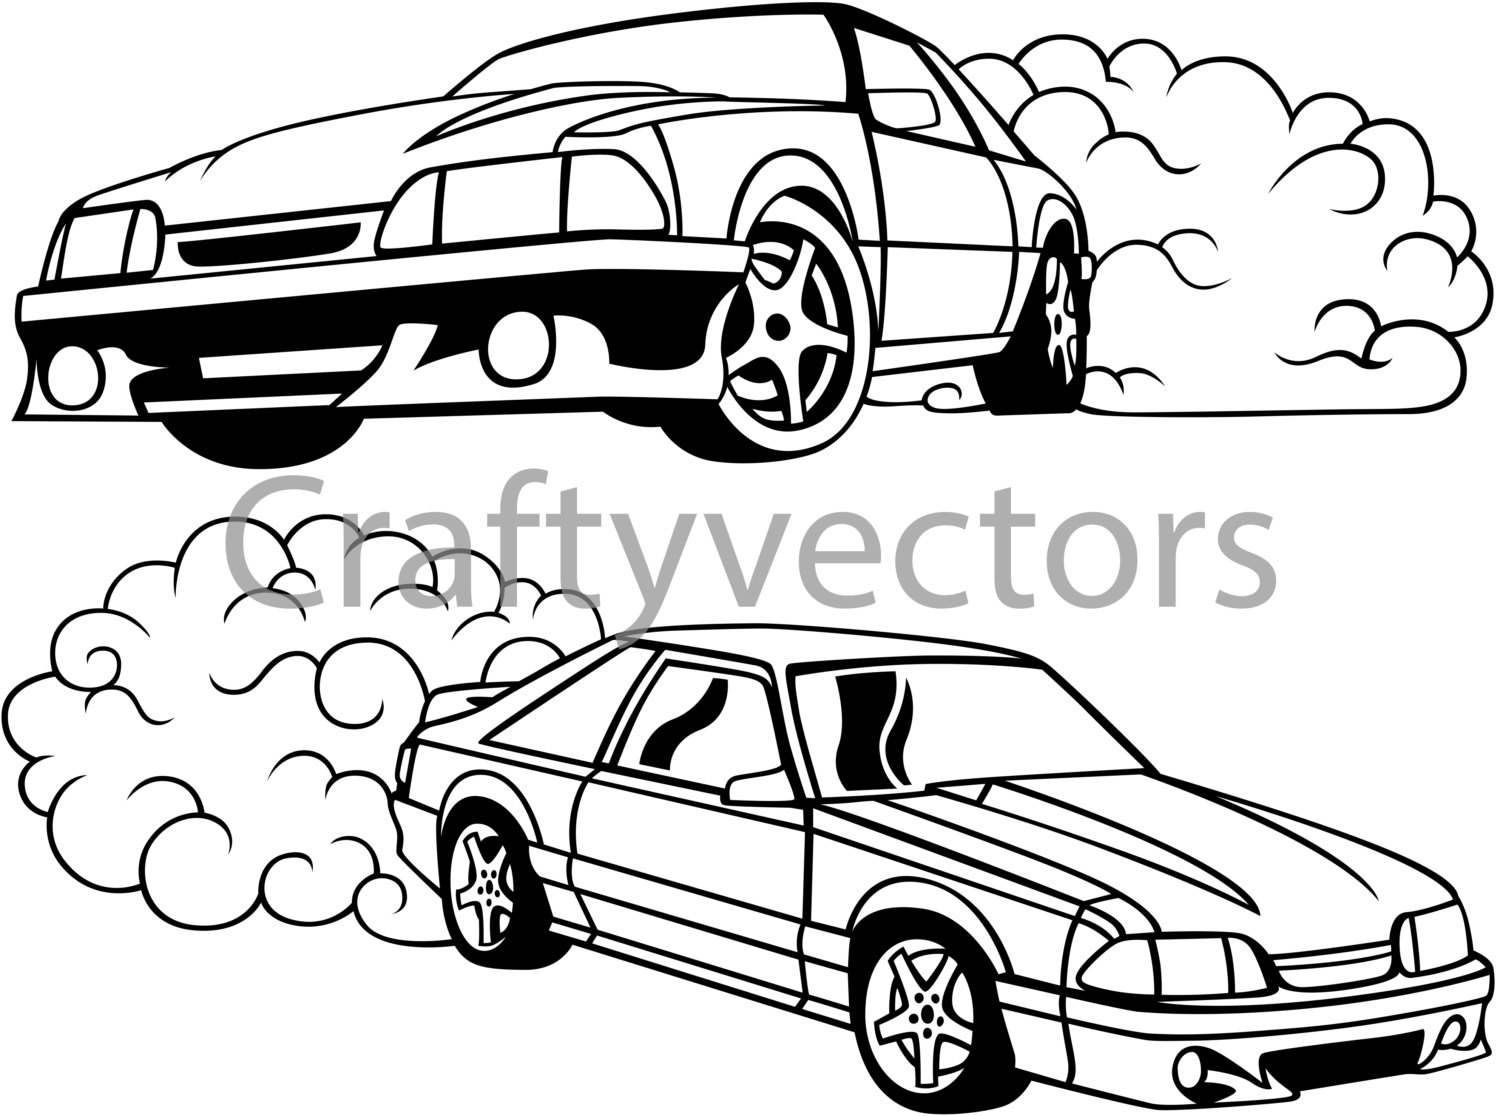 1500x1116 Ford Mustang Outline. Ford Mustang Gt Getting A Fr Rpm L Stock Car